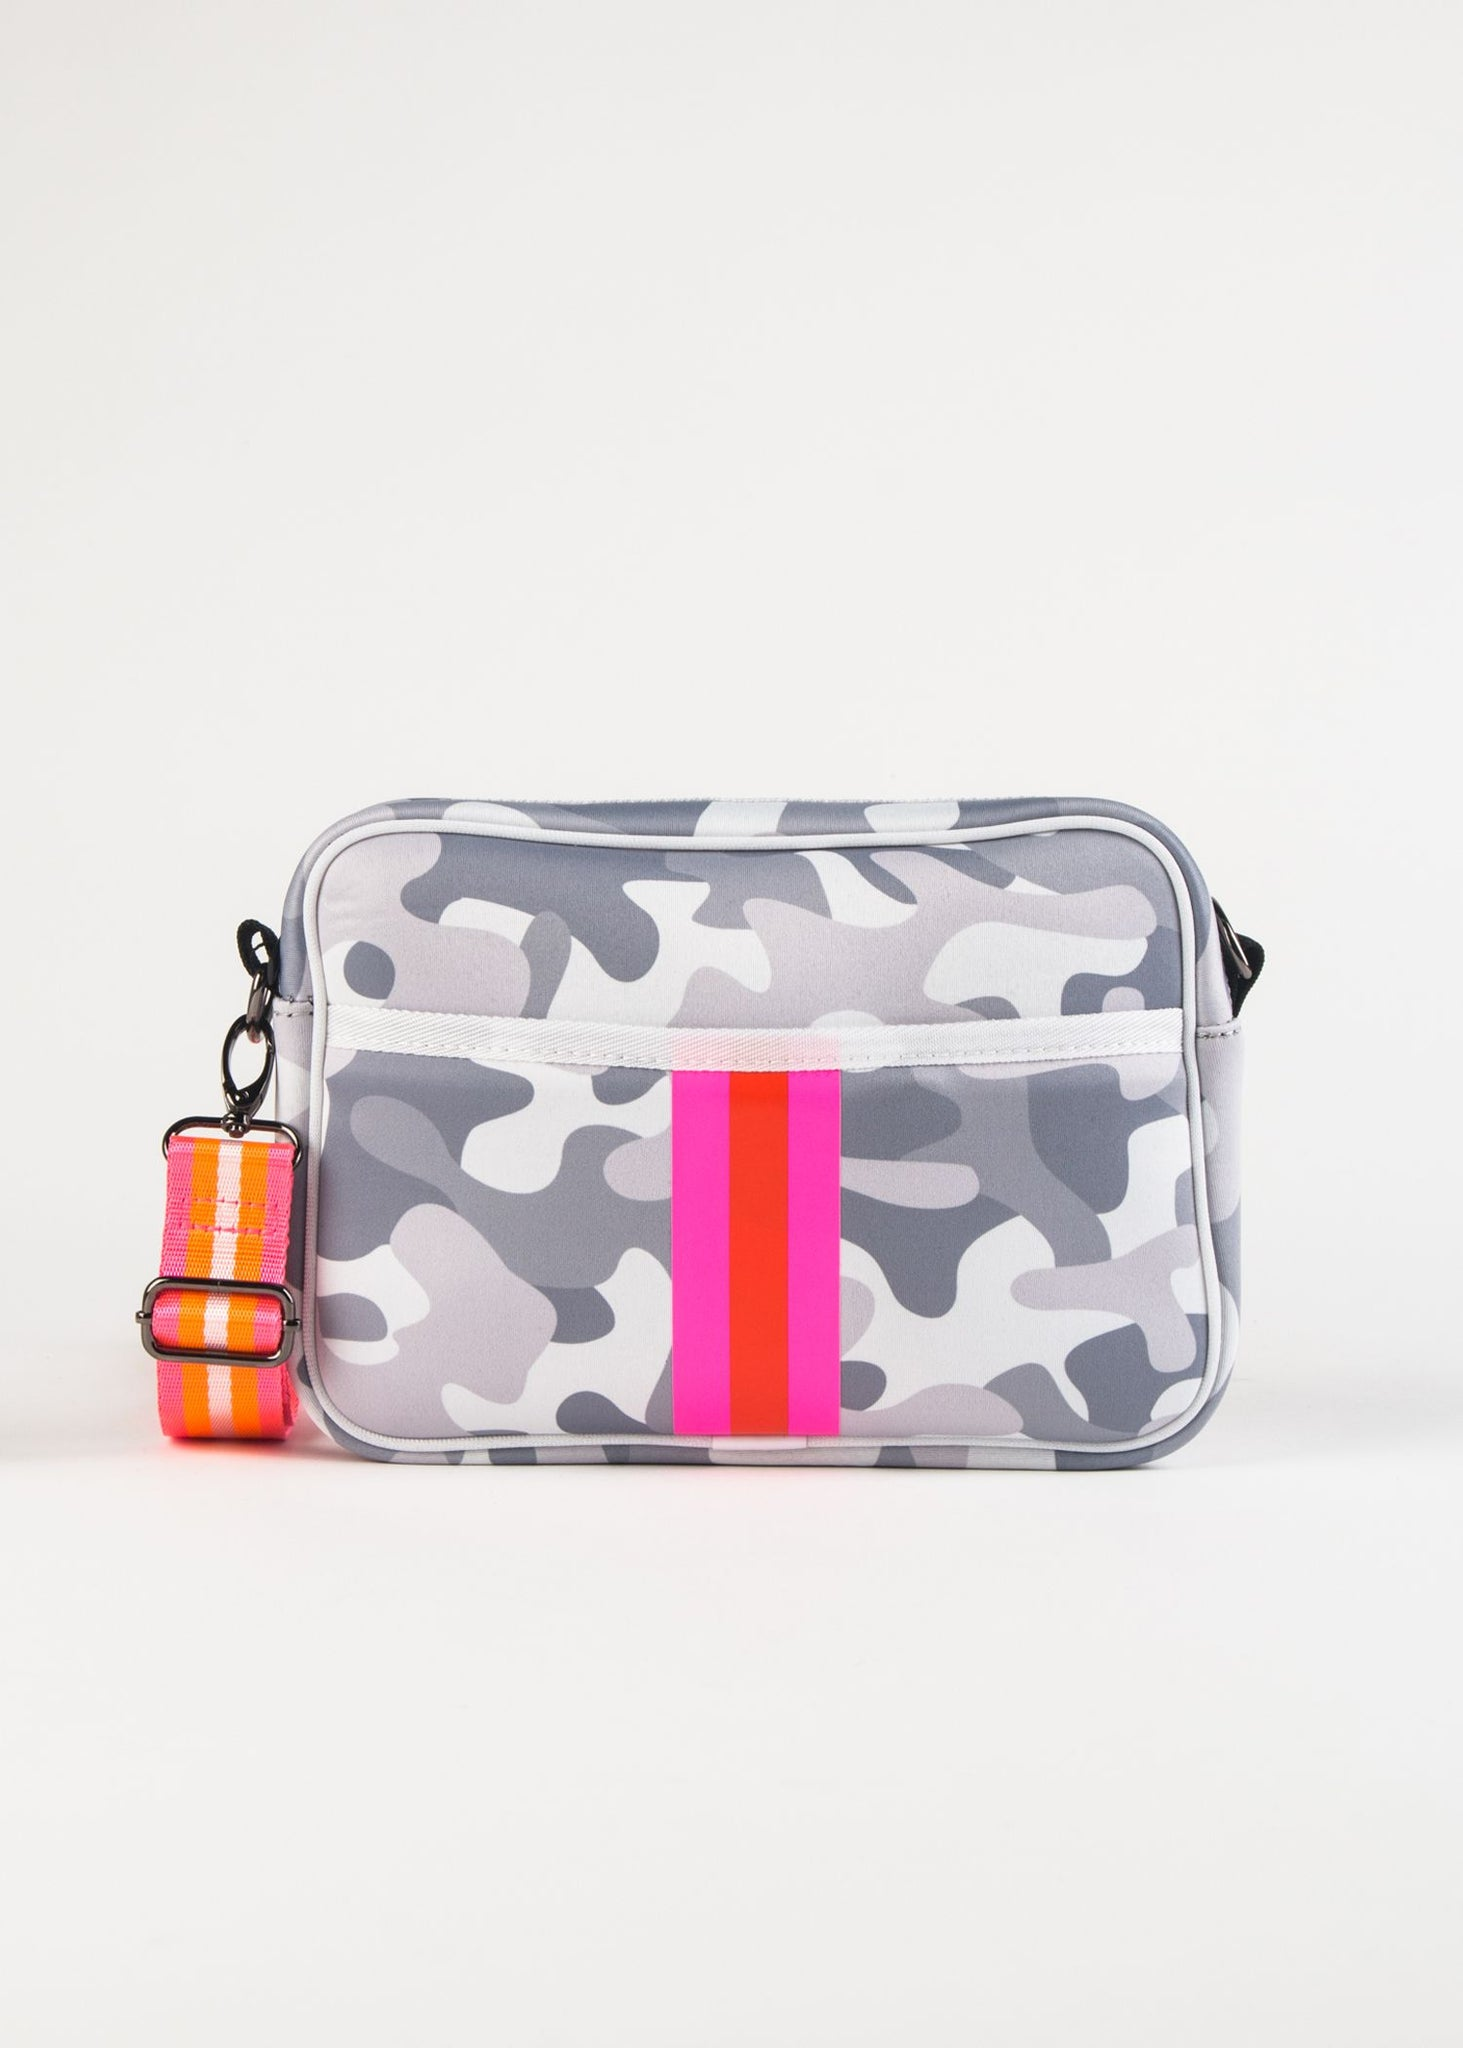 DREW-RISE CAMO PRINT NEOPRENE CAMERA BAG